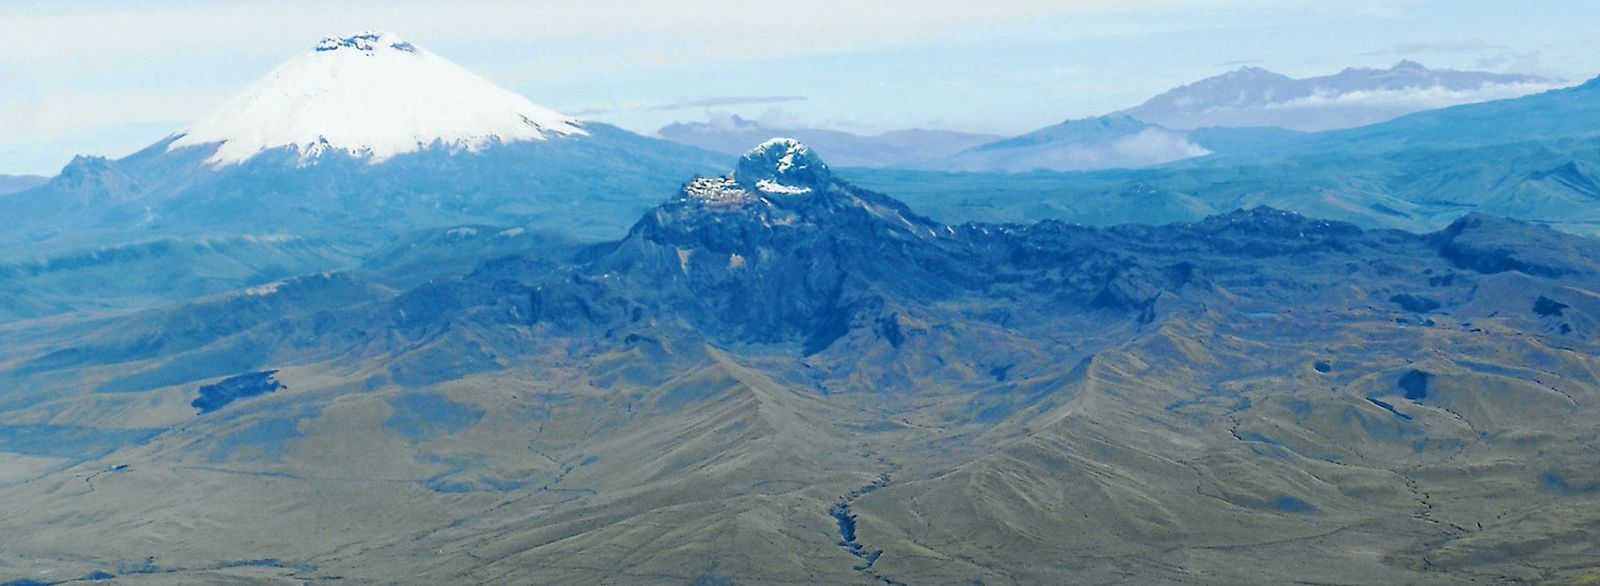 El Chalupas caldera - the Quilindaña in the center of the caldera, with Cotopaxi in the background. - Doc. El Comercio